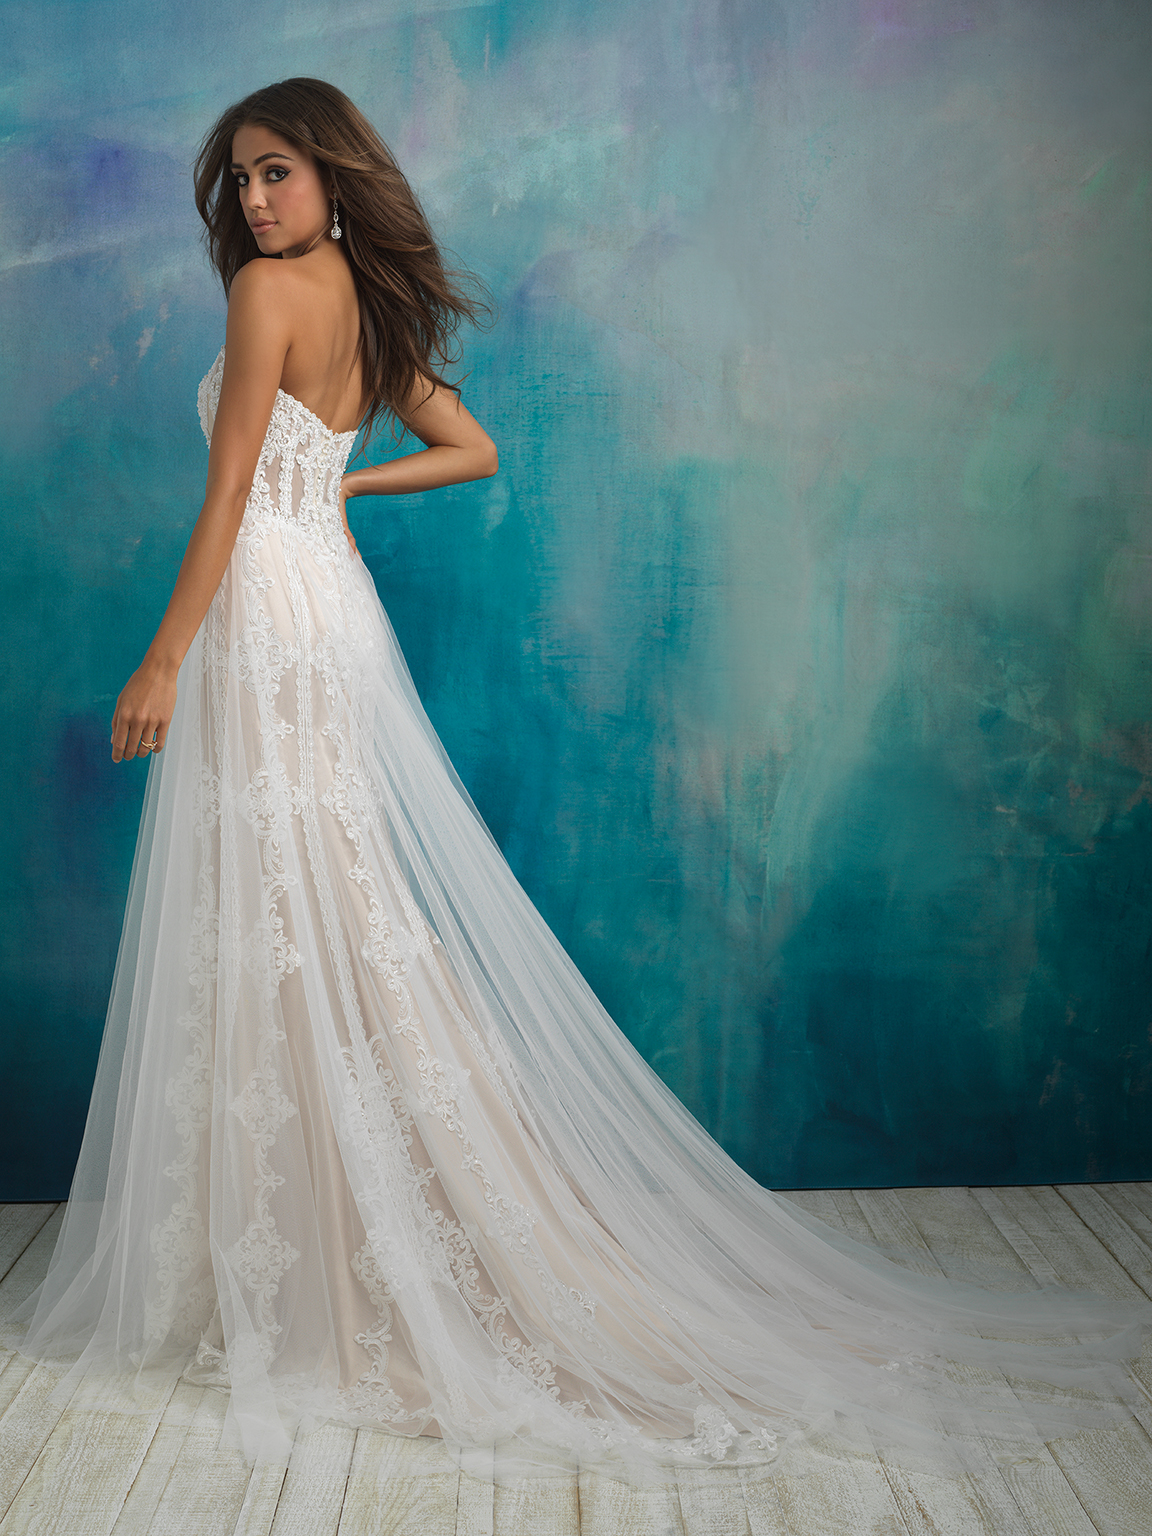 07069cf604af Strapless Sweetheart Neckline Beaded And Embroidered Sheath Wedding Dress  With Attached Tulle Overskirt | Kleinfeld Bridal